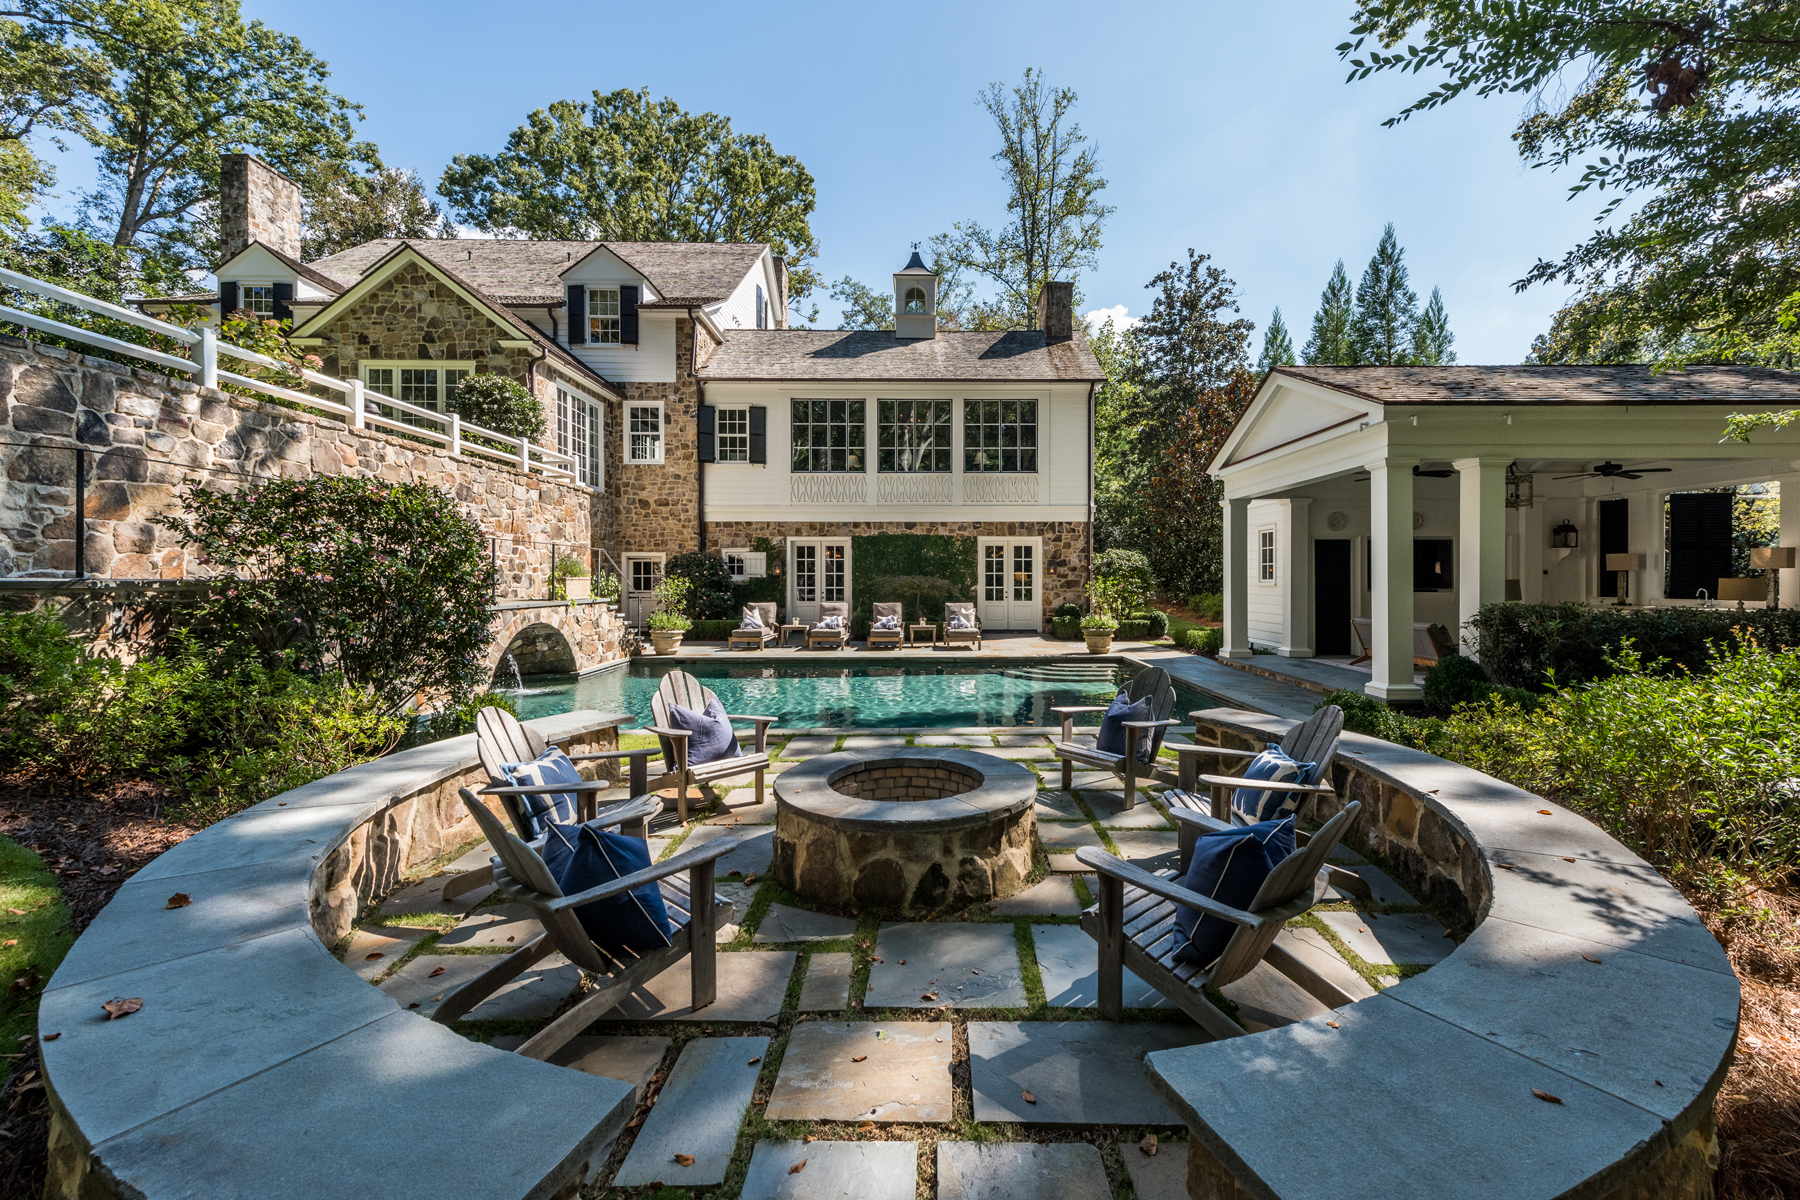 Additional photo for property listing at Stunning Estate On Private 2.3+/- Acres 1035 Nawench Drive NW Atlanta, Georgia 30327 United States